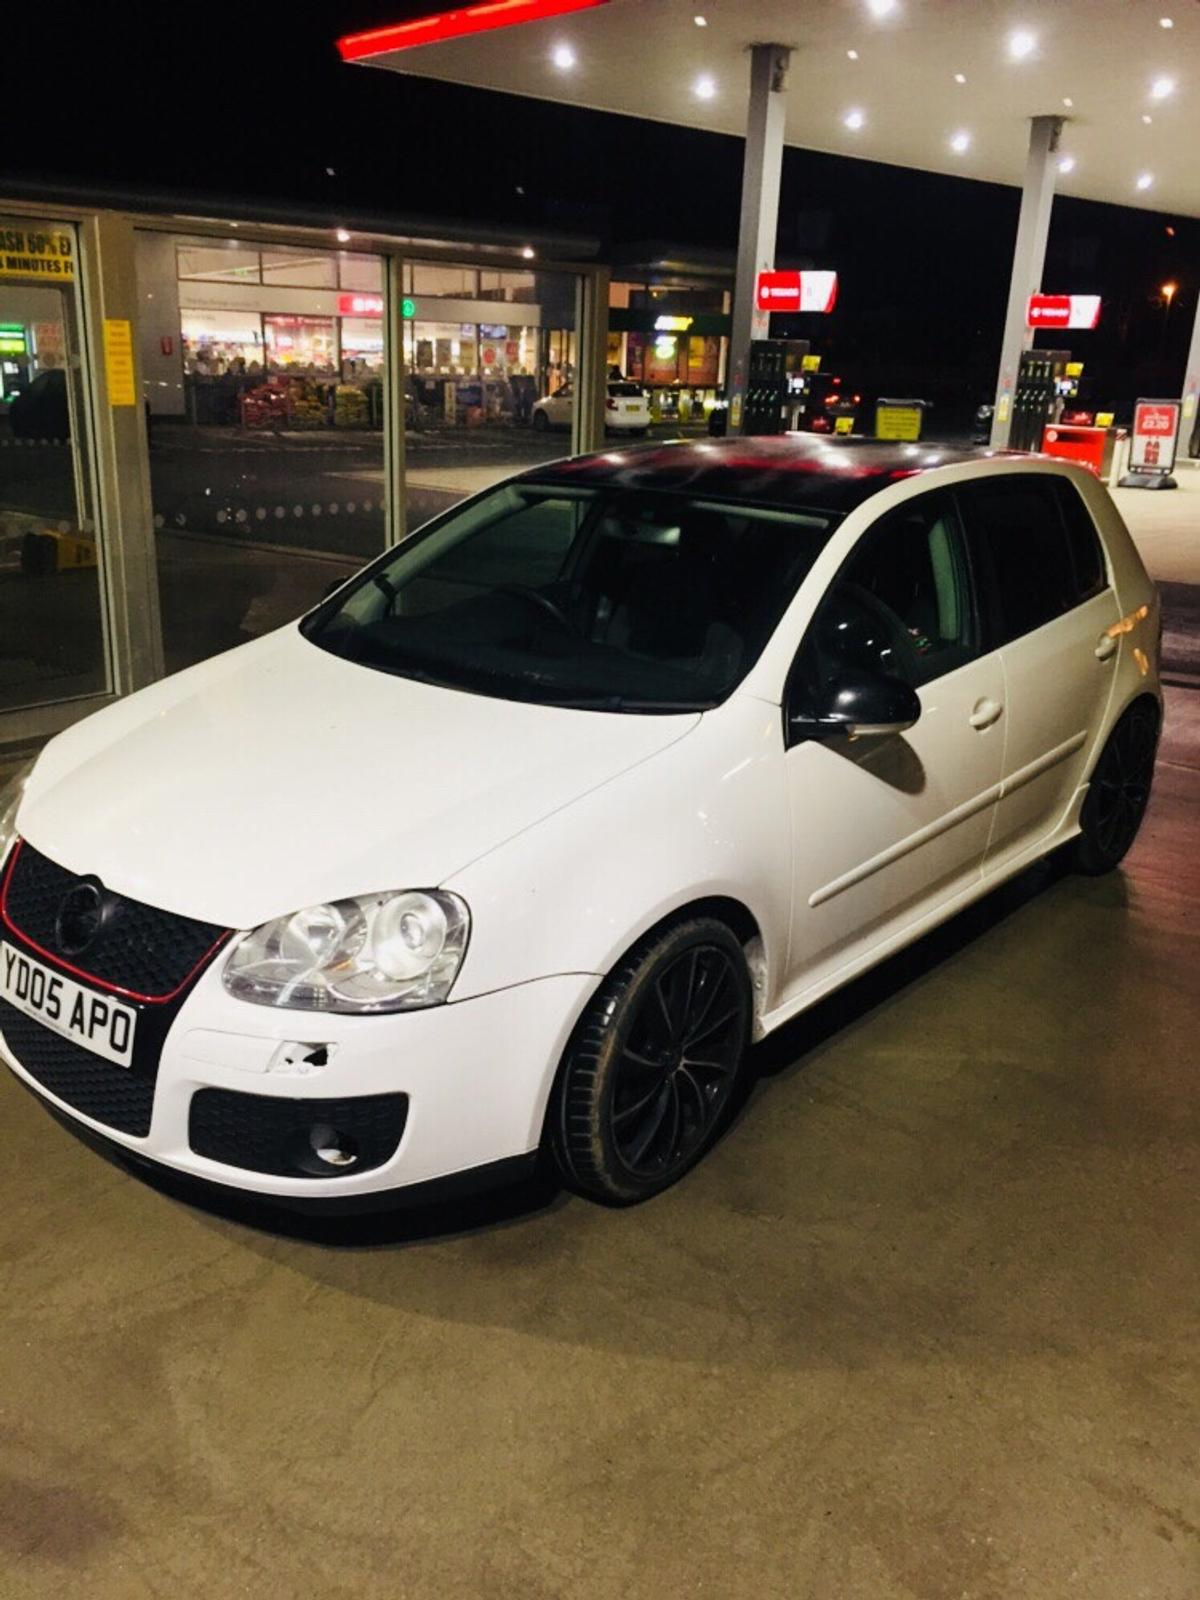 Vw golf mk5 1 6 fsi r32 gti replica hpi clear in Pendle for